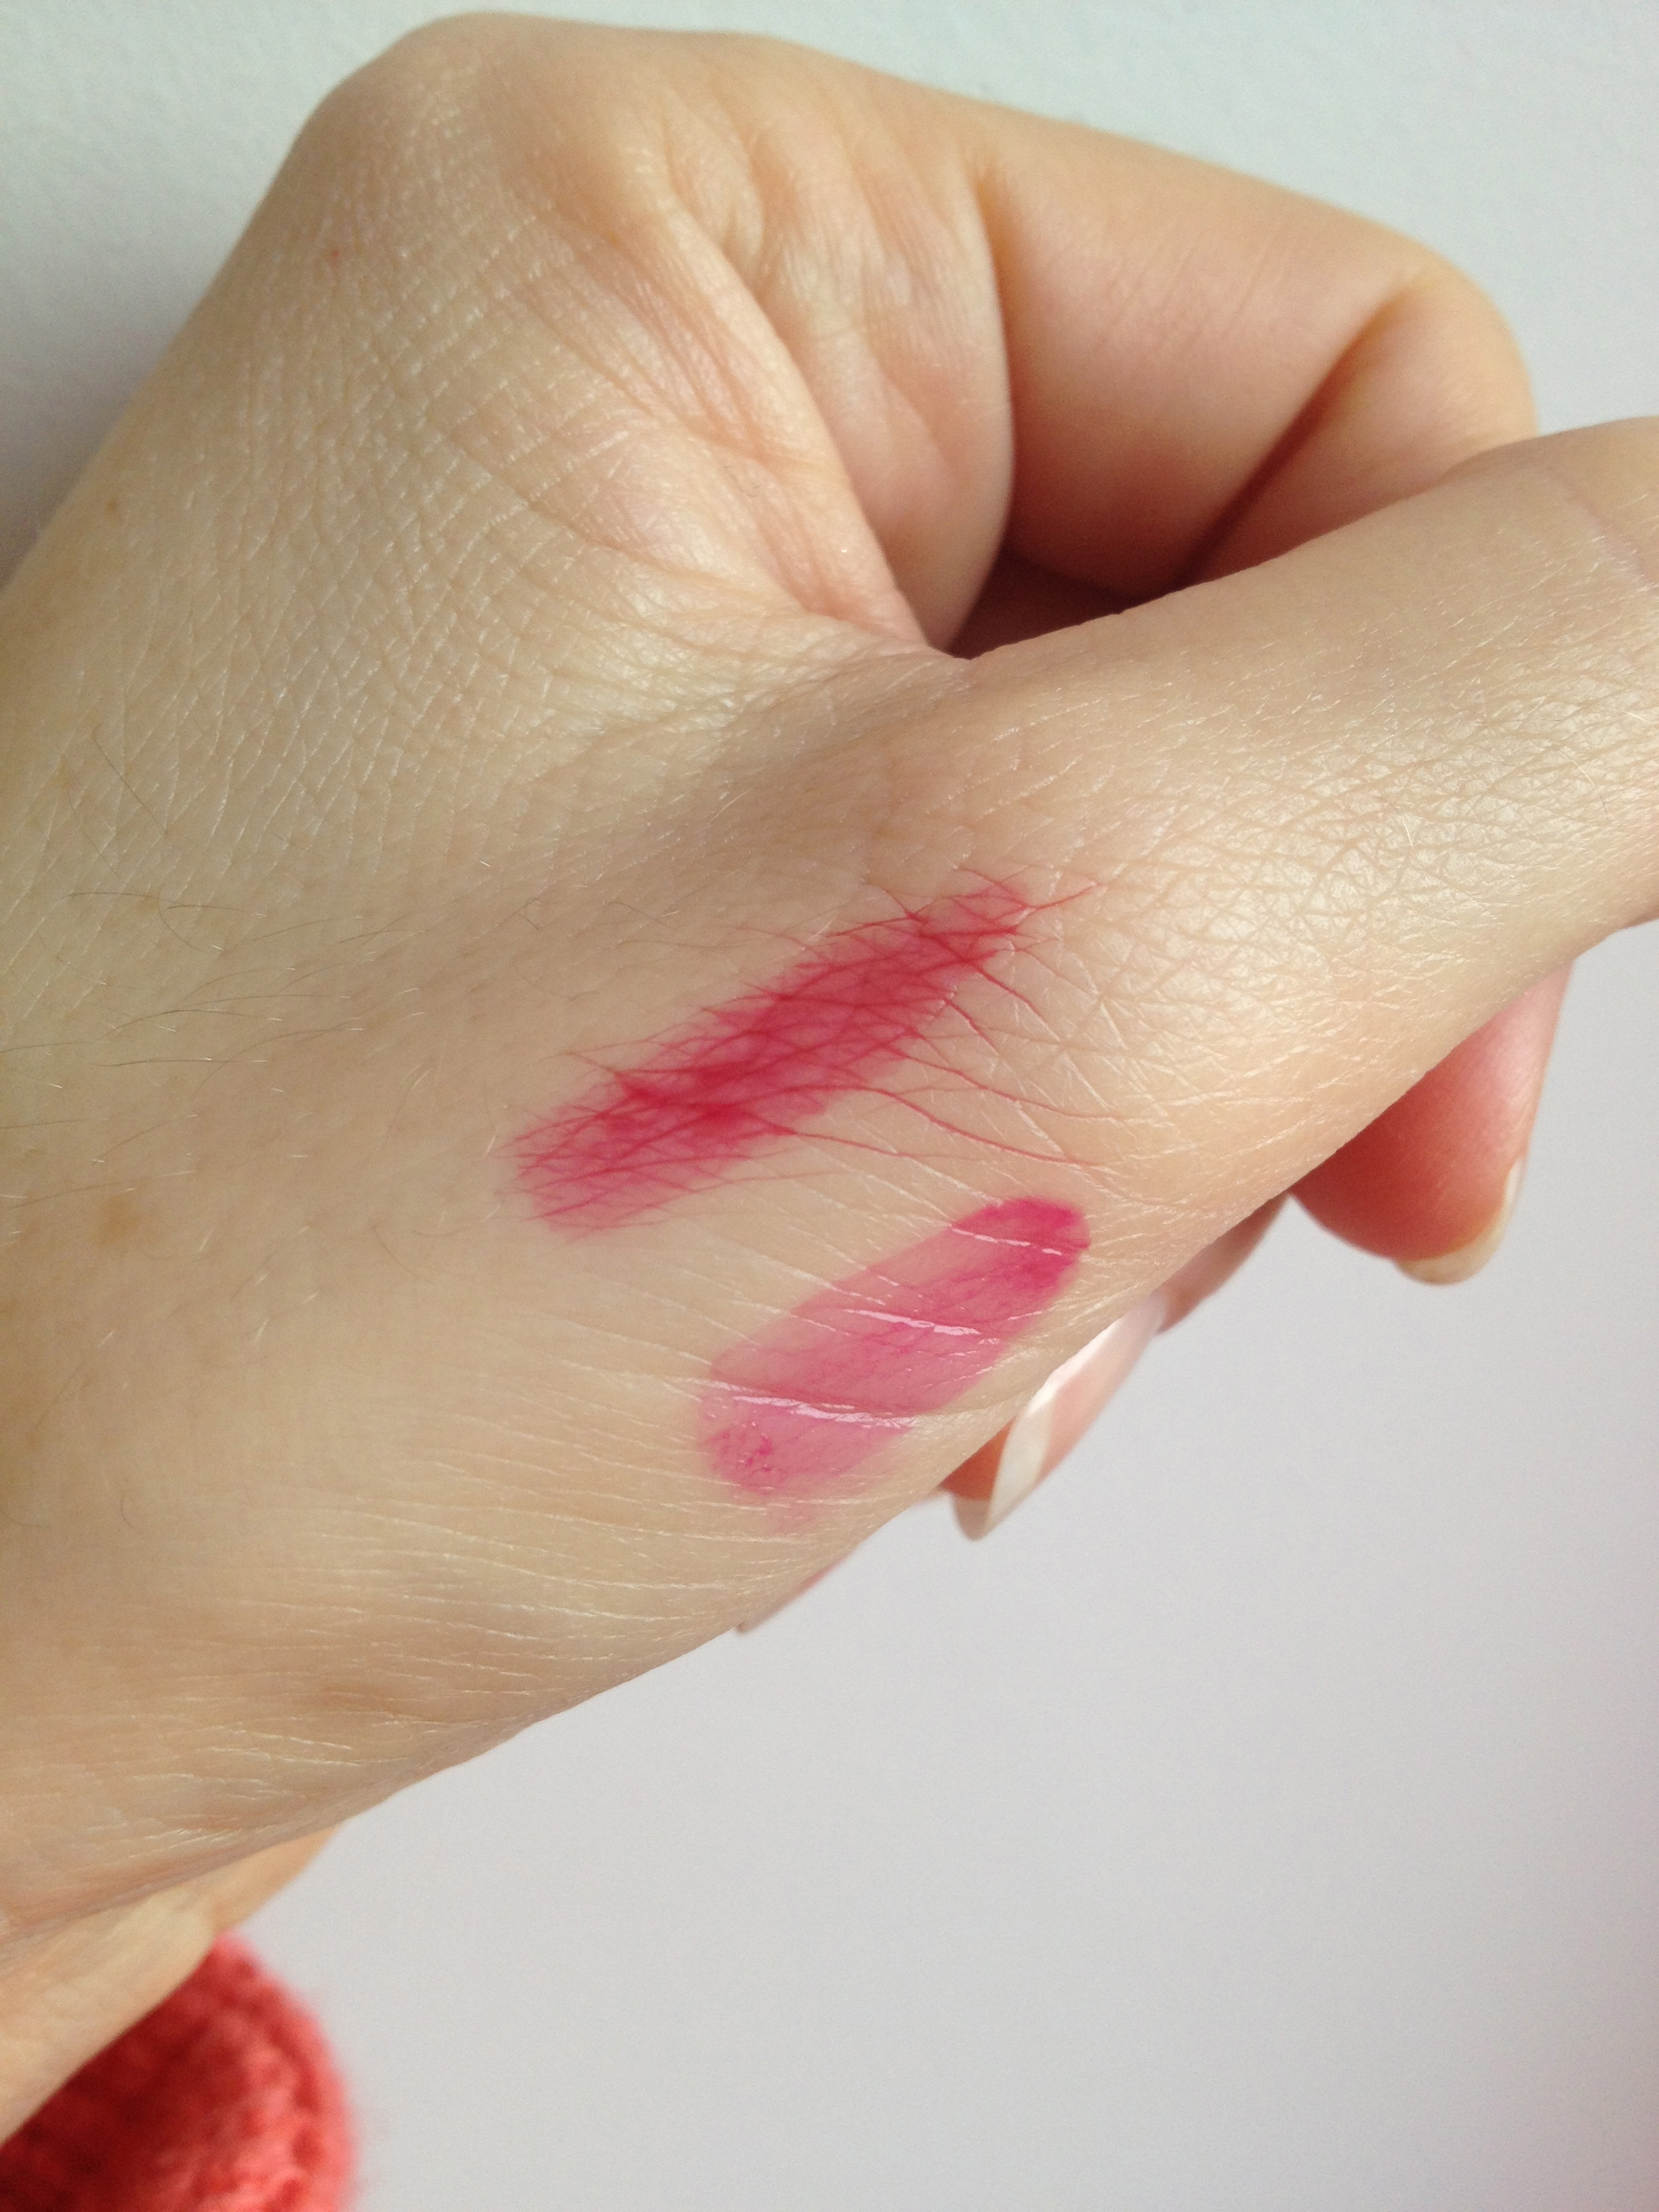 Top swatch - Me Me Me's Cherub's Blush  Bottom swatch - The Balm's Stainiac